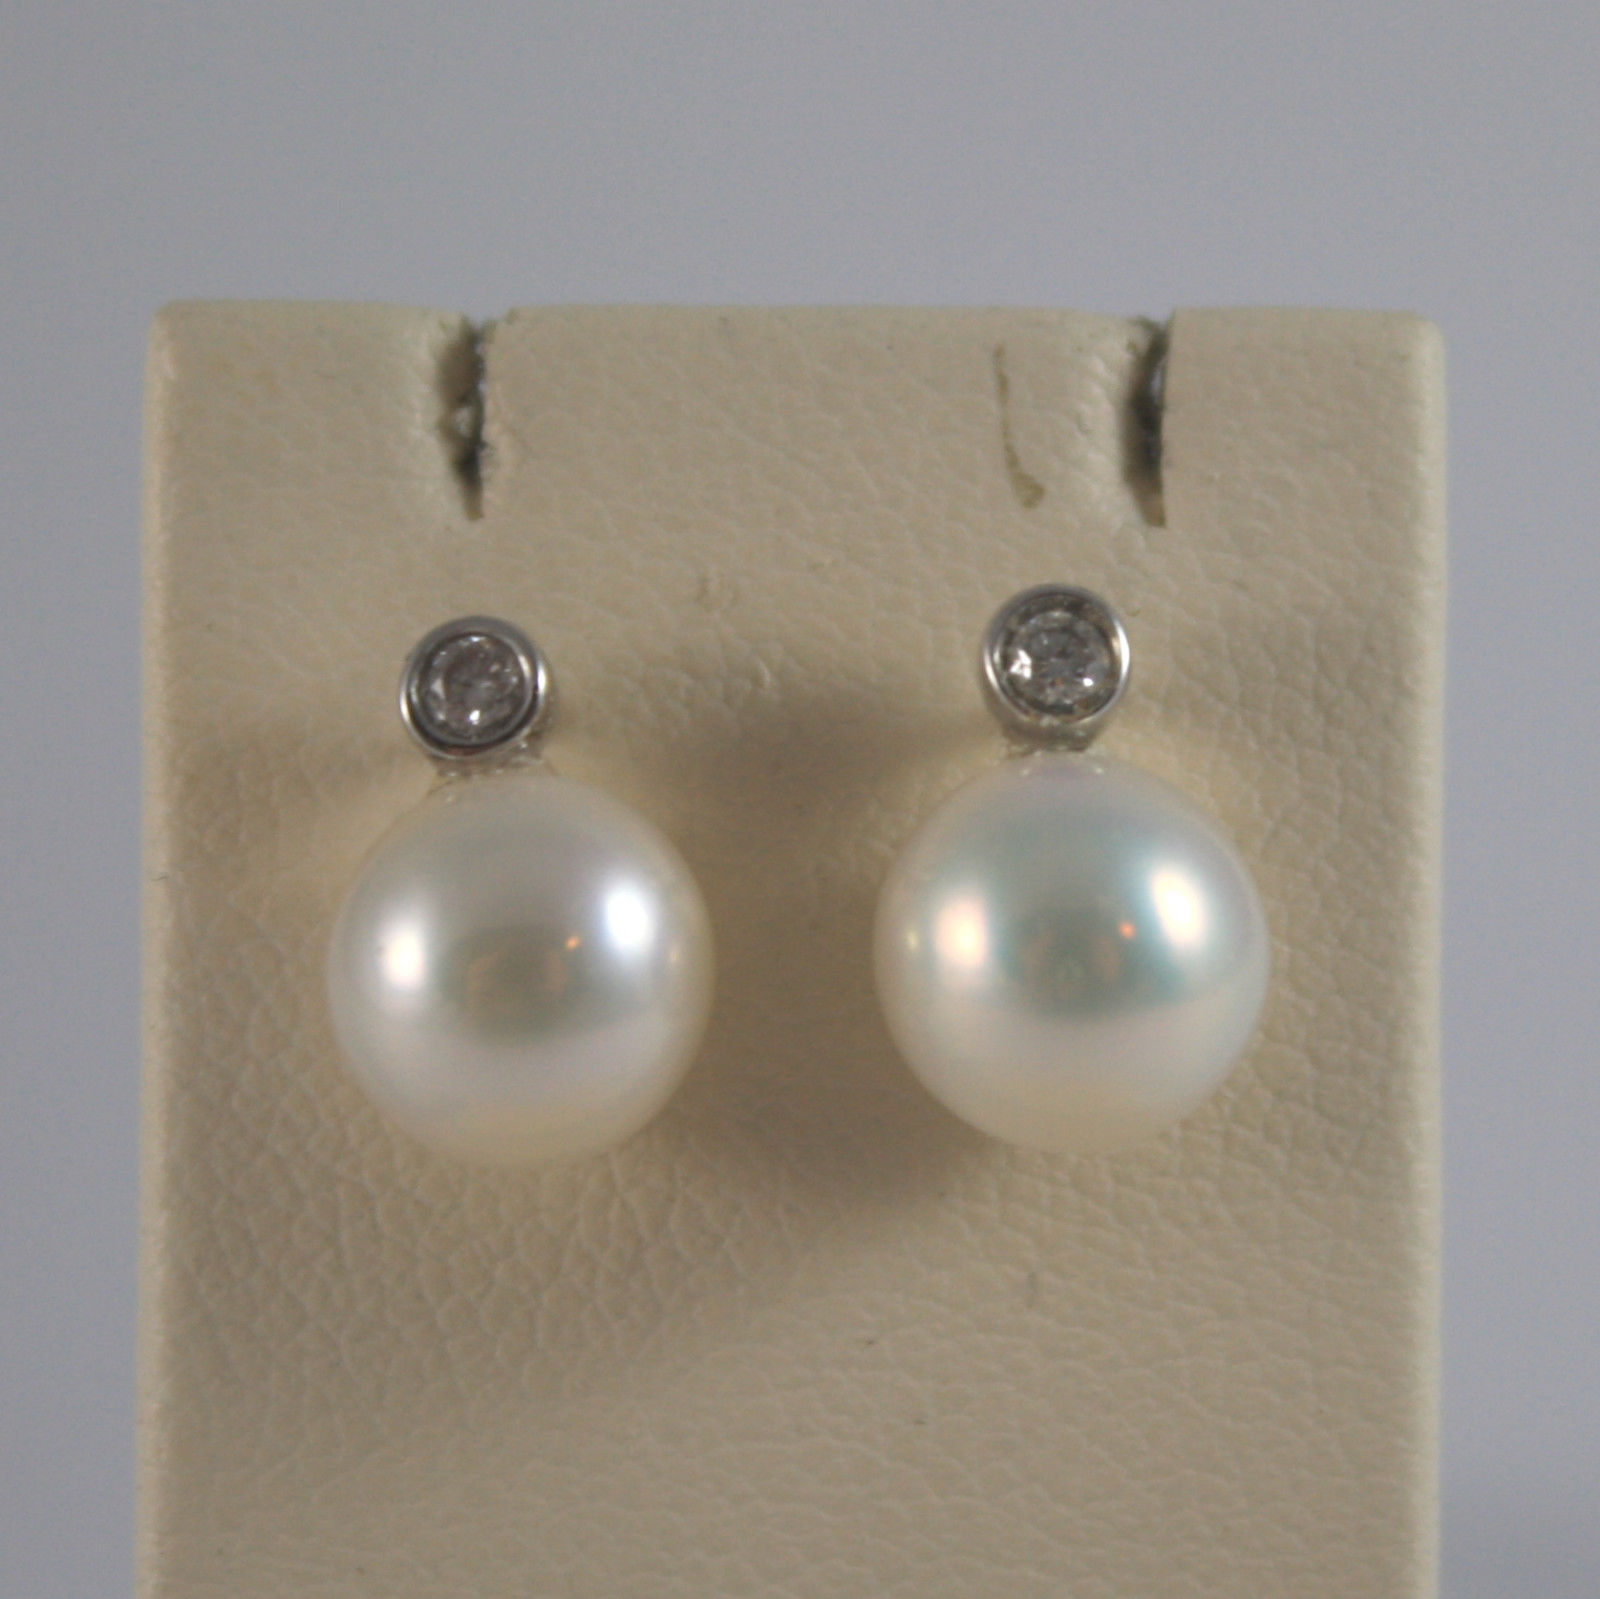 SOLID 18K WHITE GOLD EARRINGS, WITH WHITE PEARLS AND DIAMONDS 0,05 CARATS